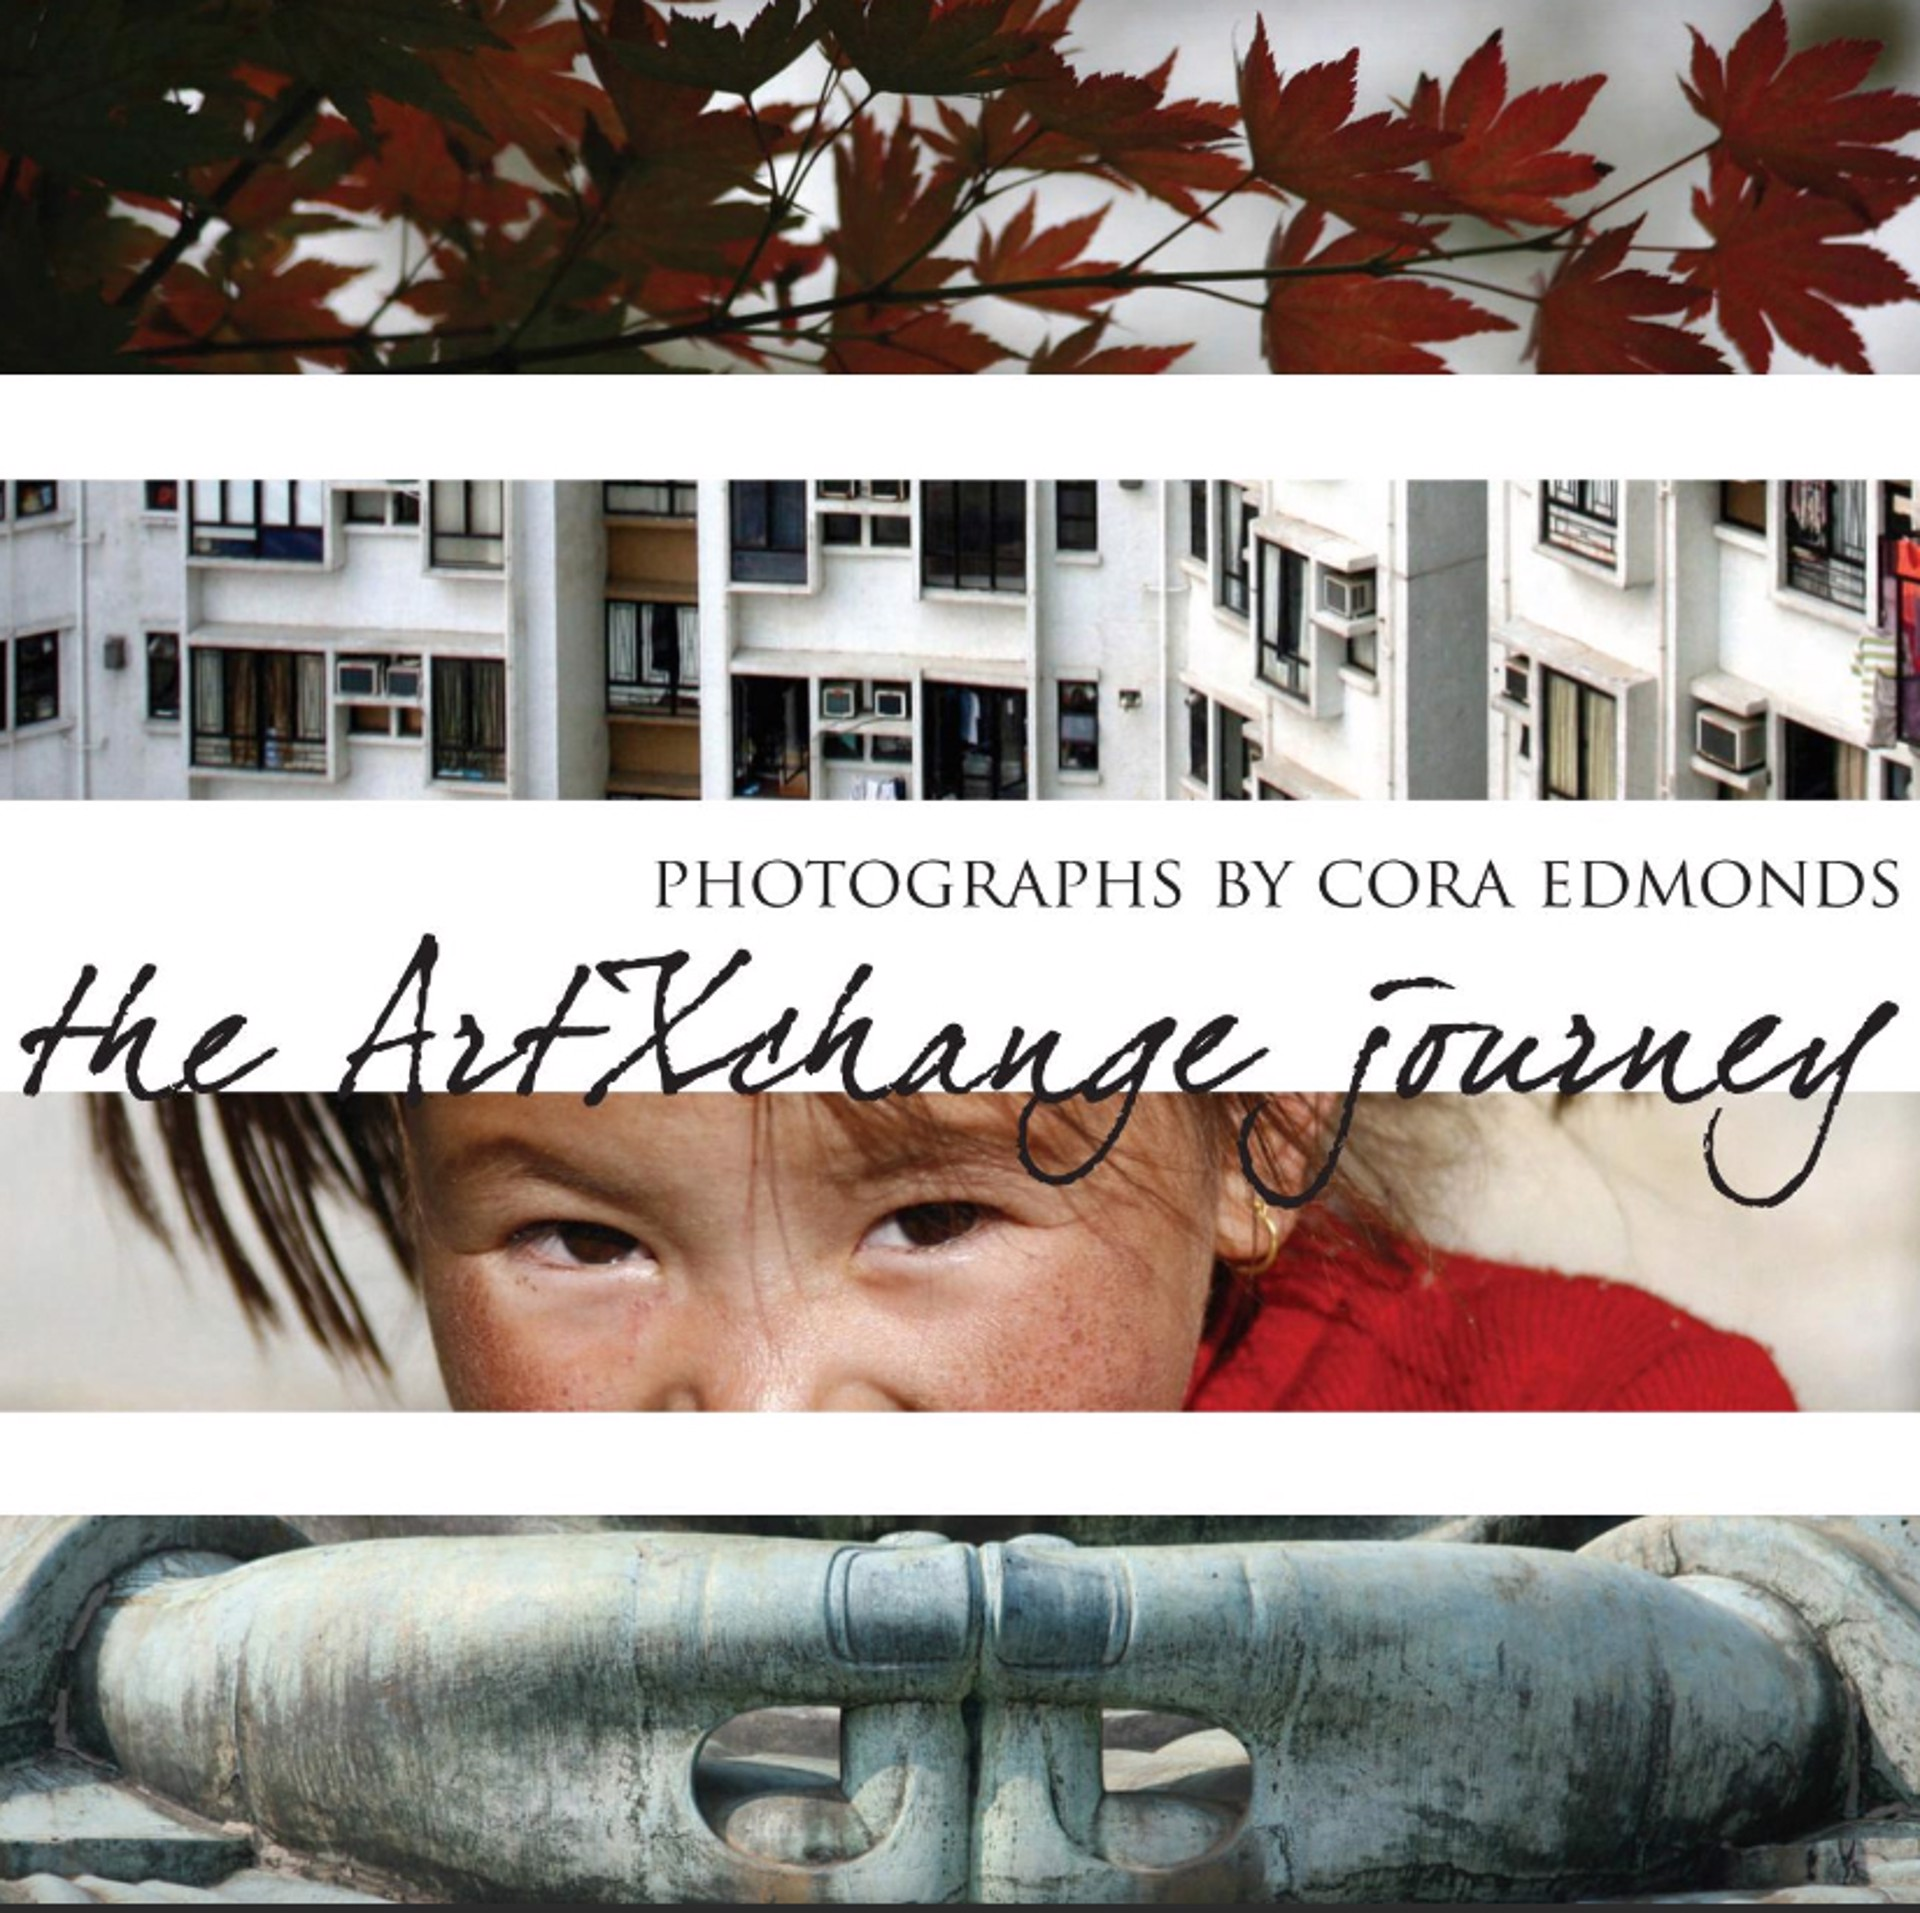 The ArtXchange Journey | exhibition catalog by Cora Edmonds